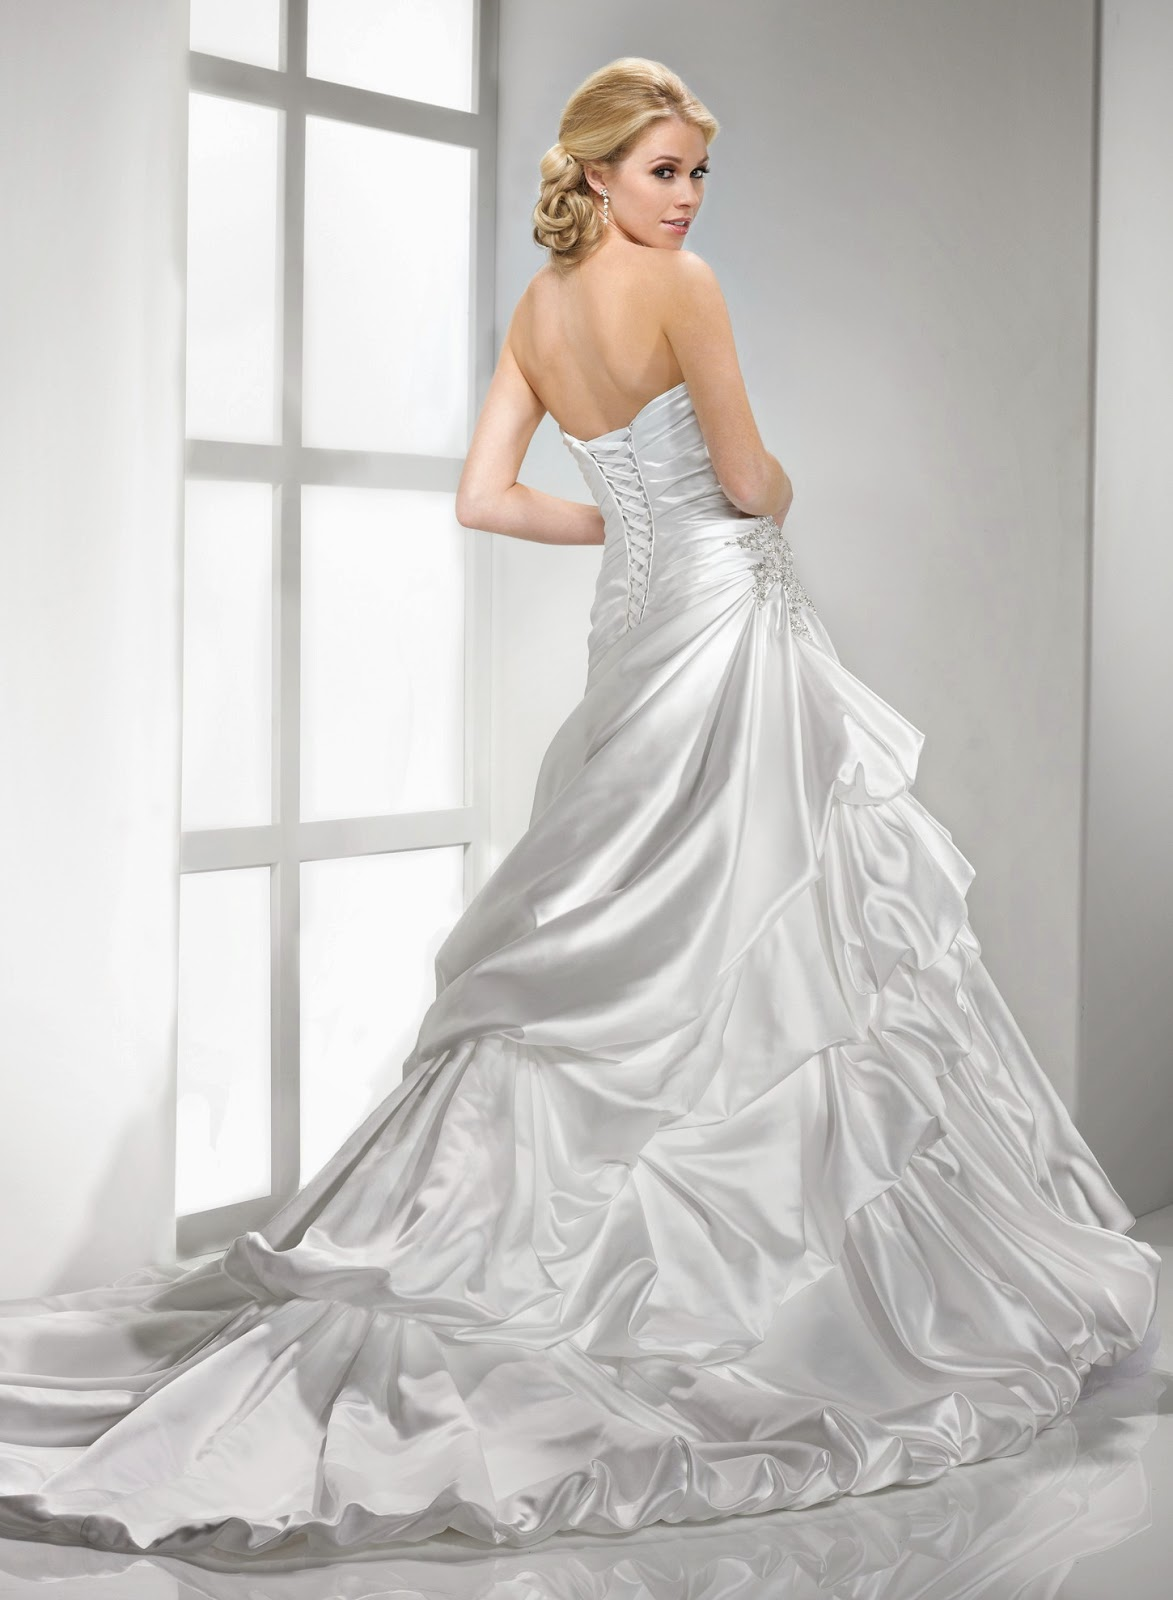 Satin Wedding Dress Idea